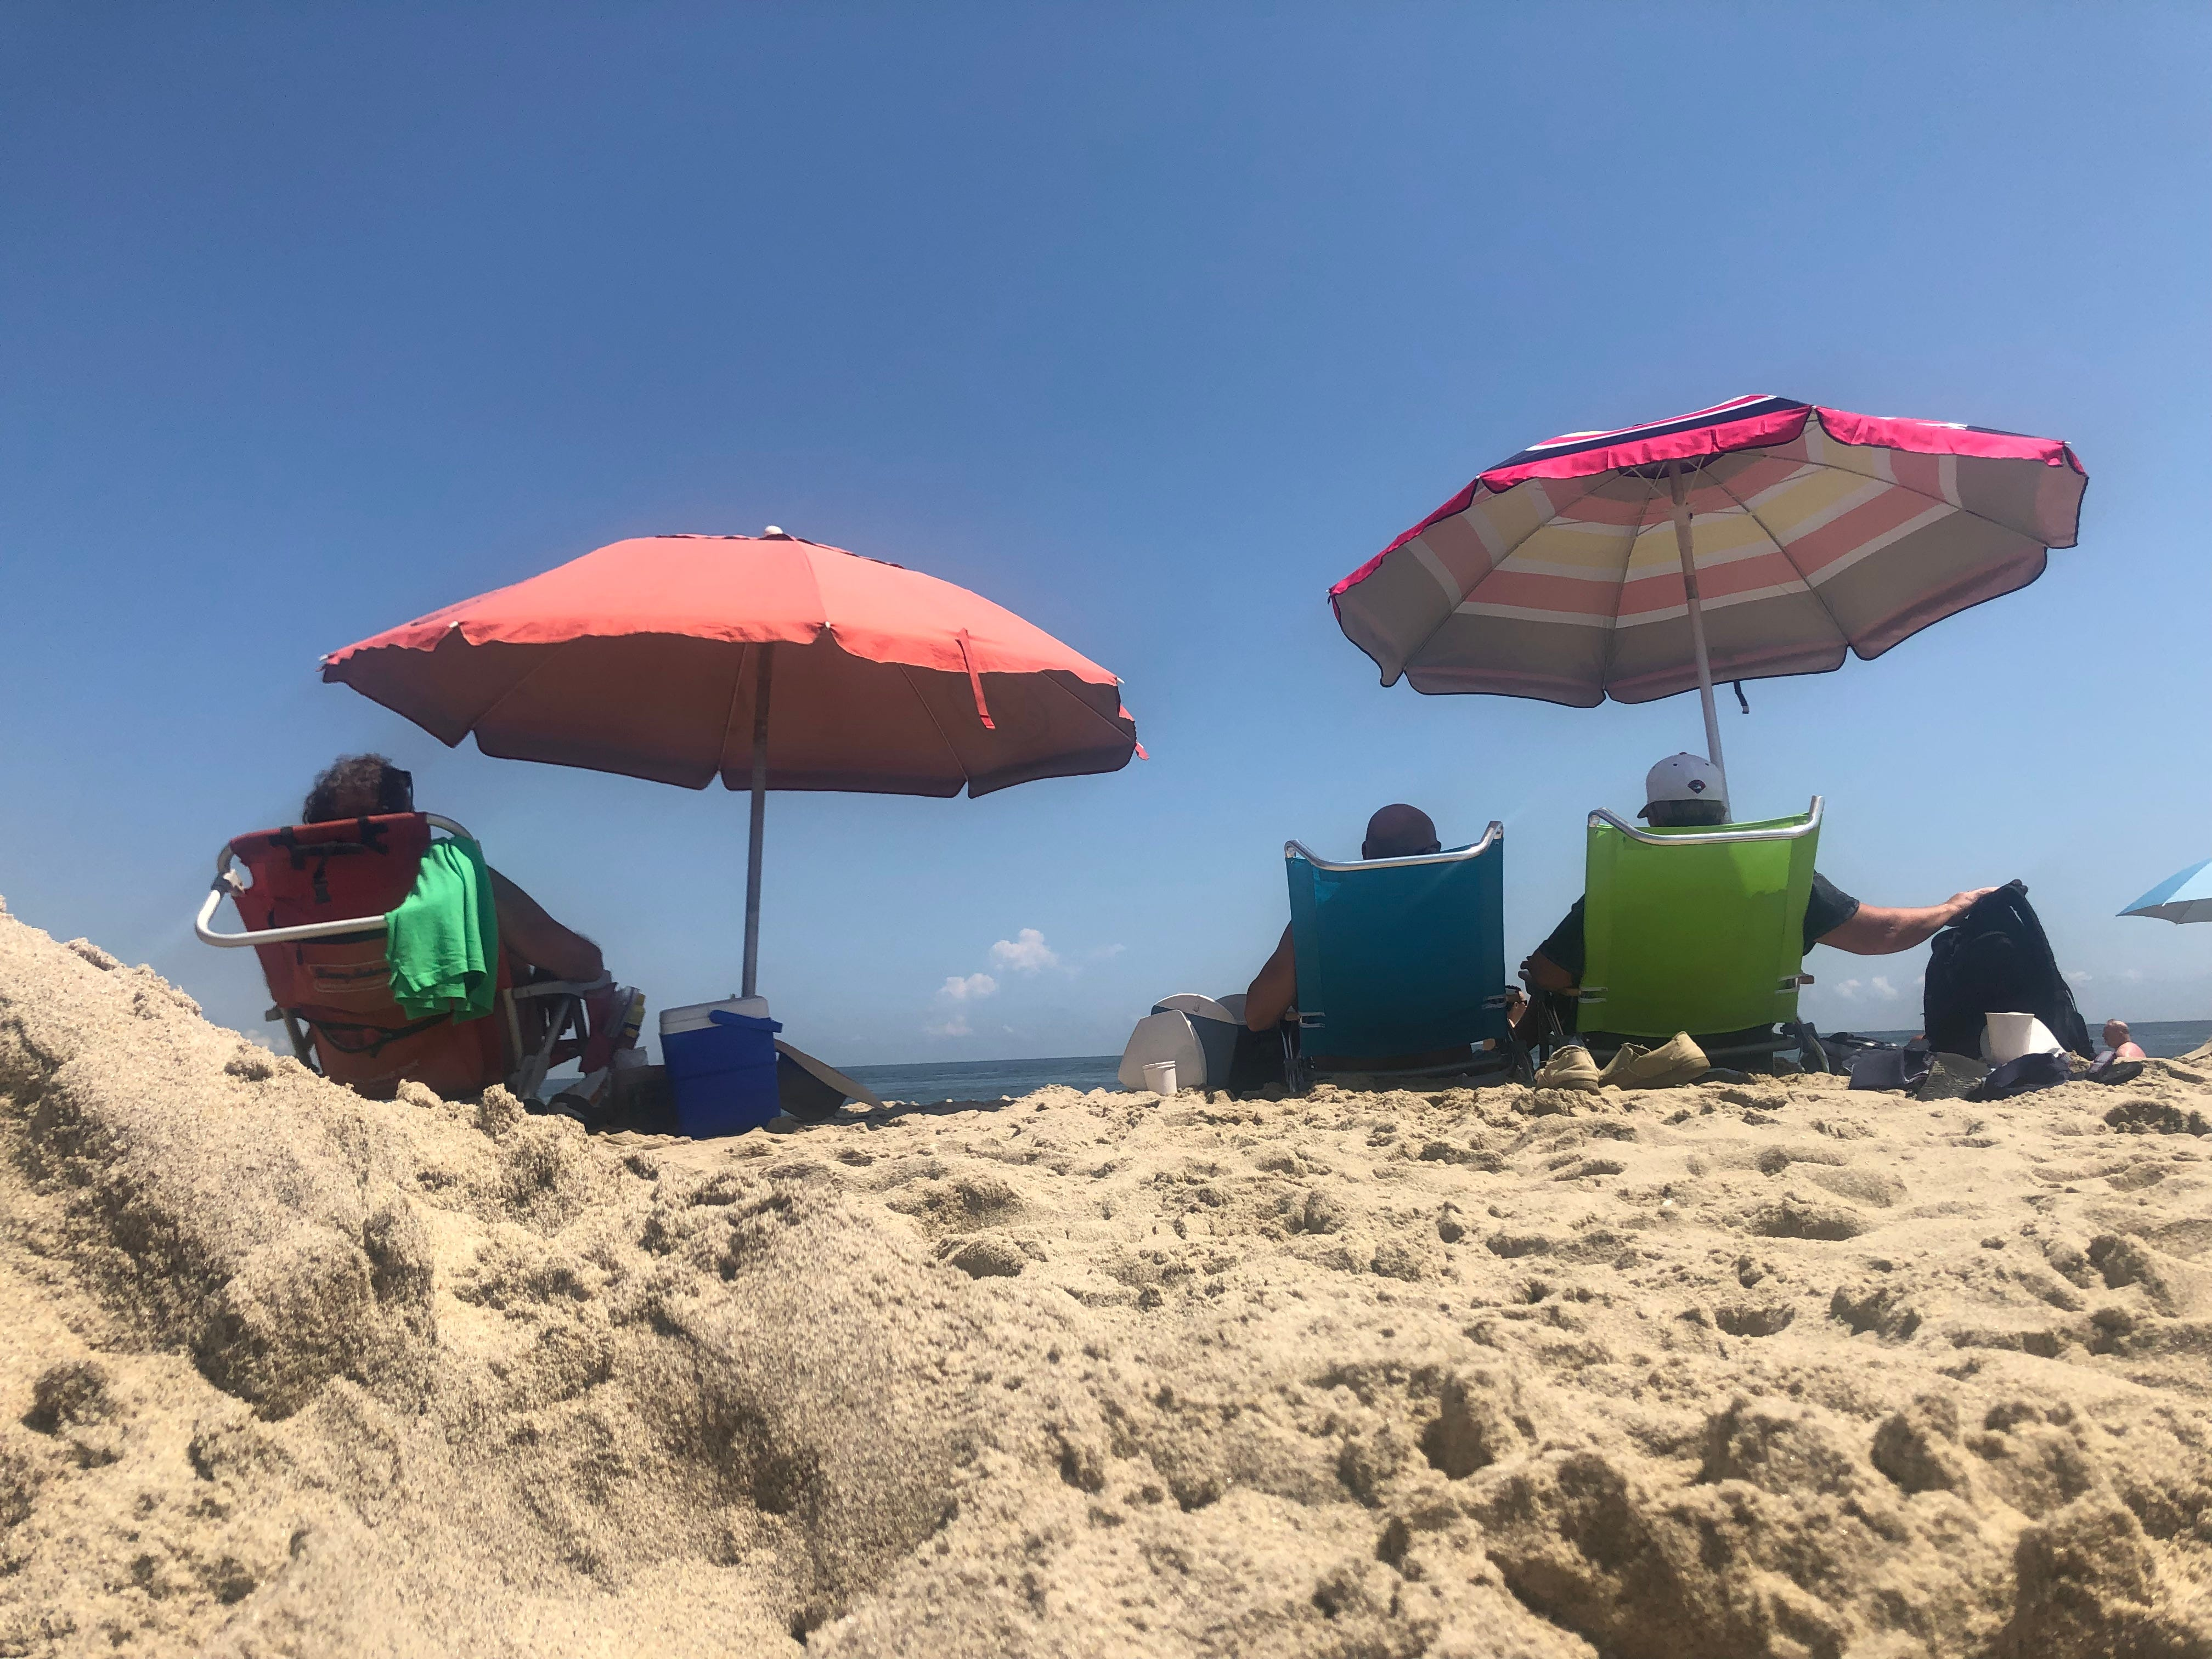 Nude Beach Videos nude beaches near me: what to expect at sandy hook's